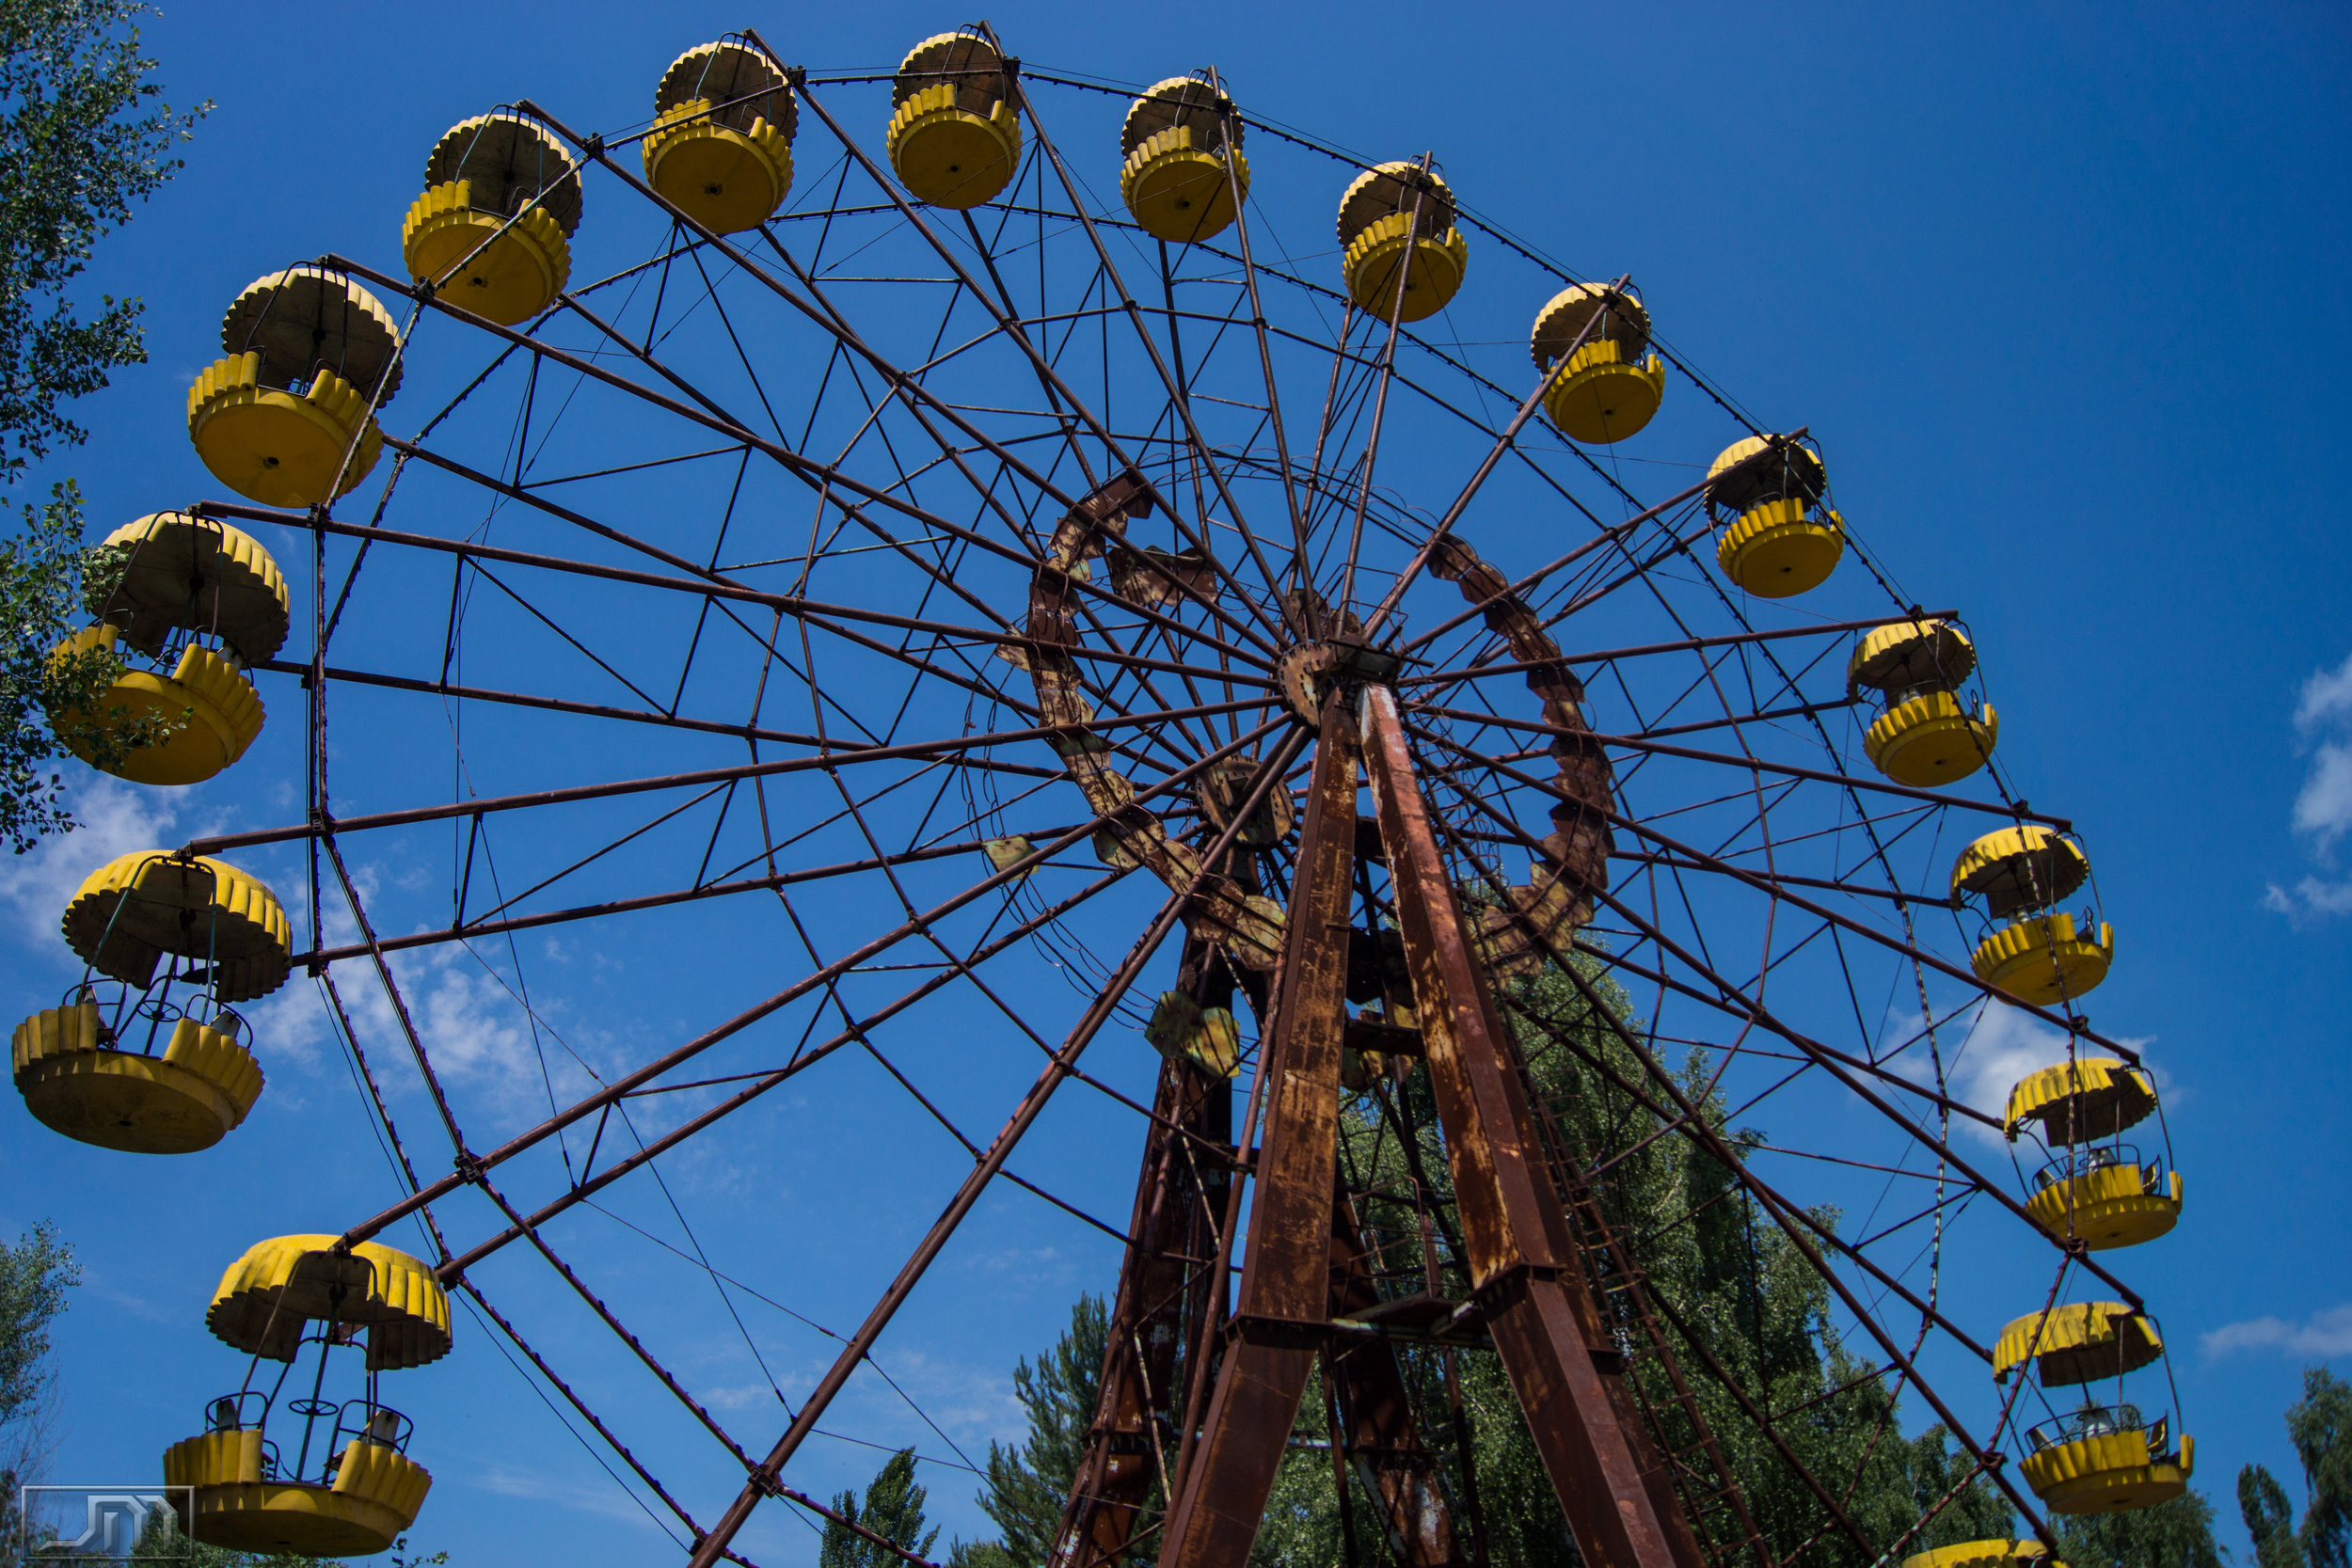 Chernobyl - Ferris Wheel Full.jpg